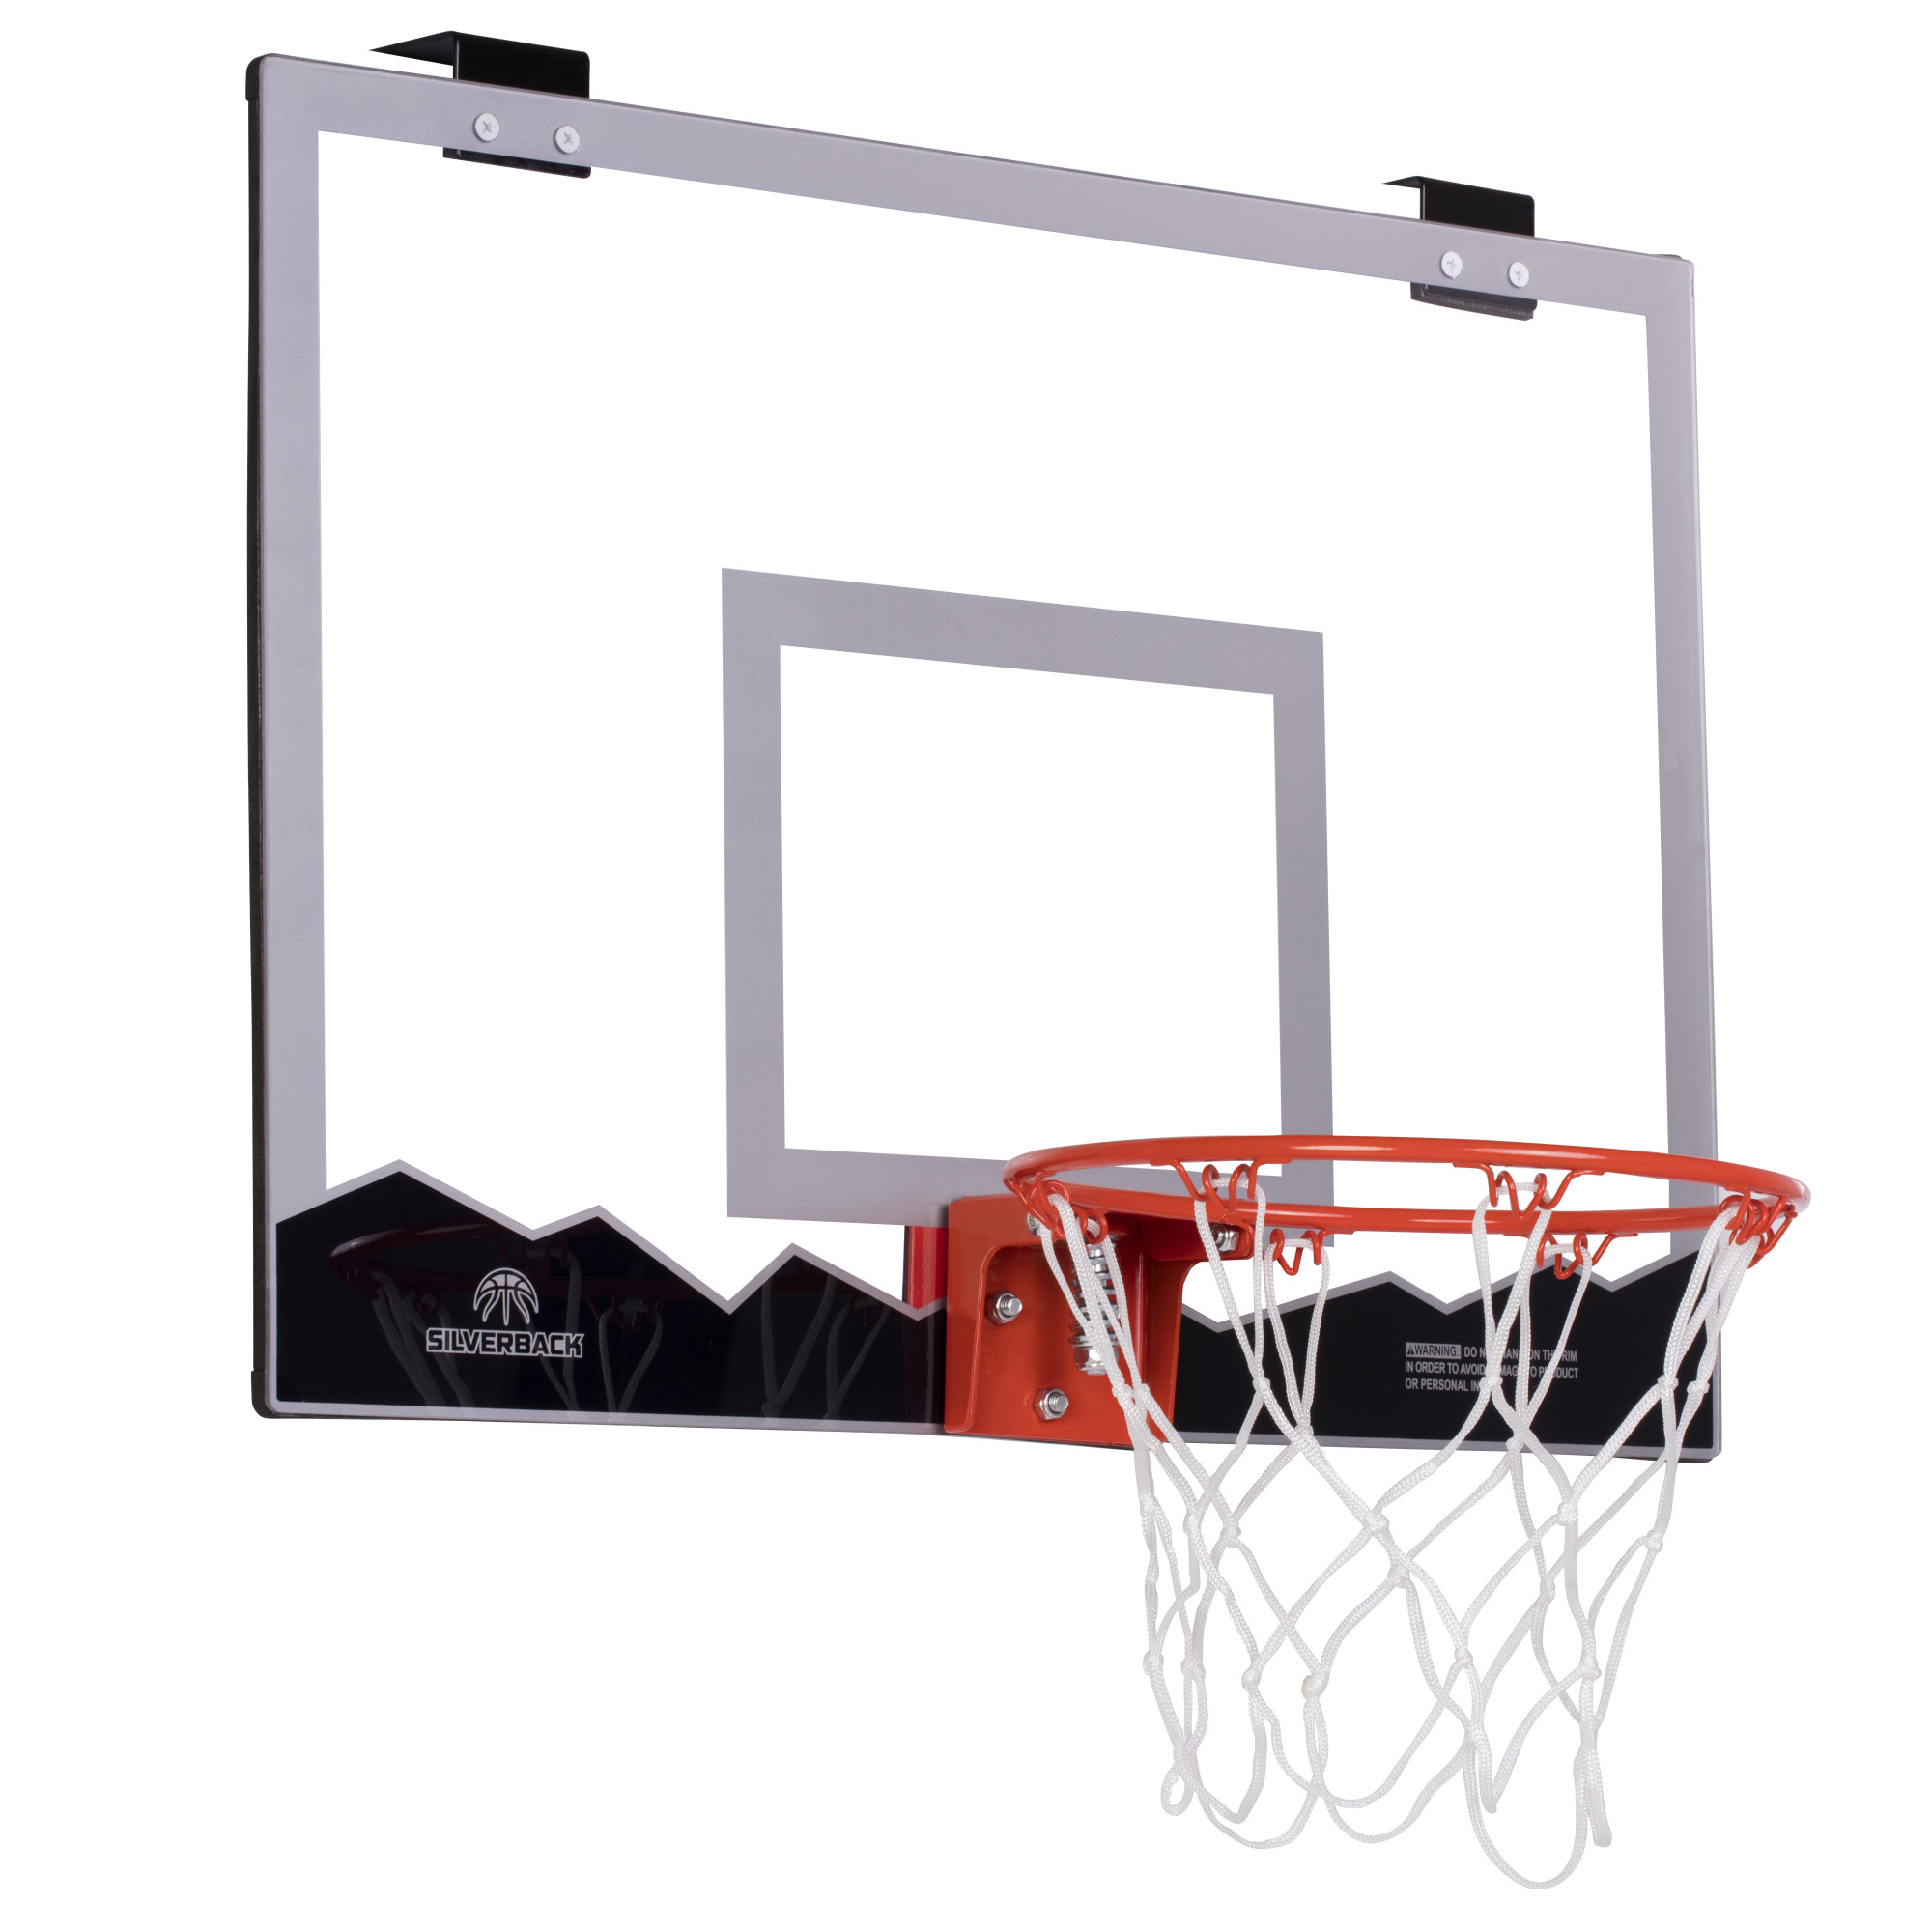 """Silverback 23"""" Over the Door Mini Basketball Hoop Set with Shatterproof Backboard Perfect for Home or Office"""